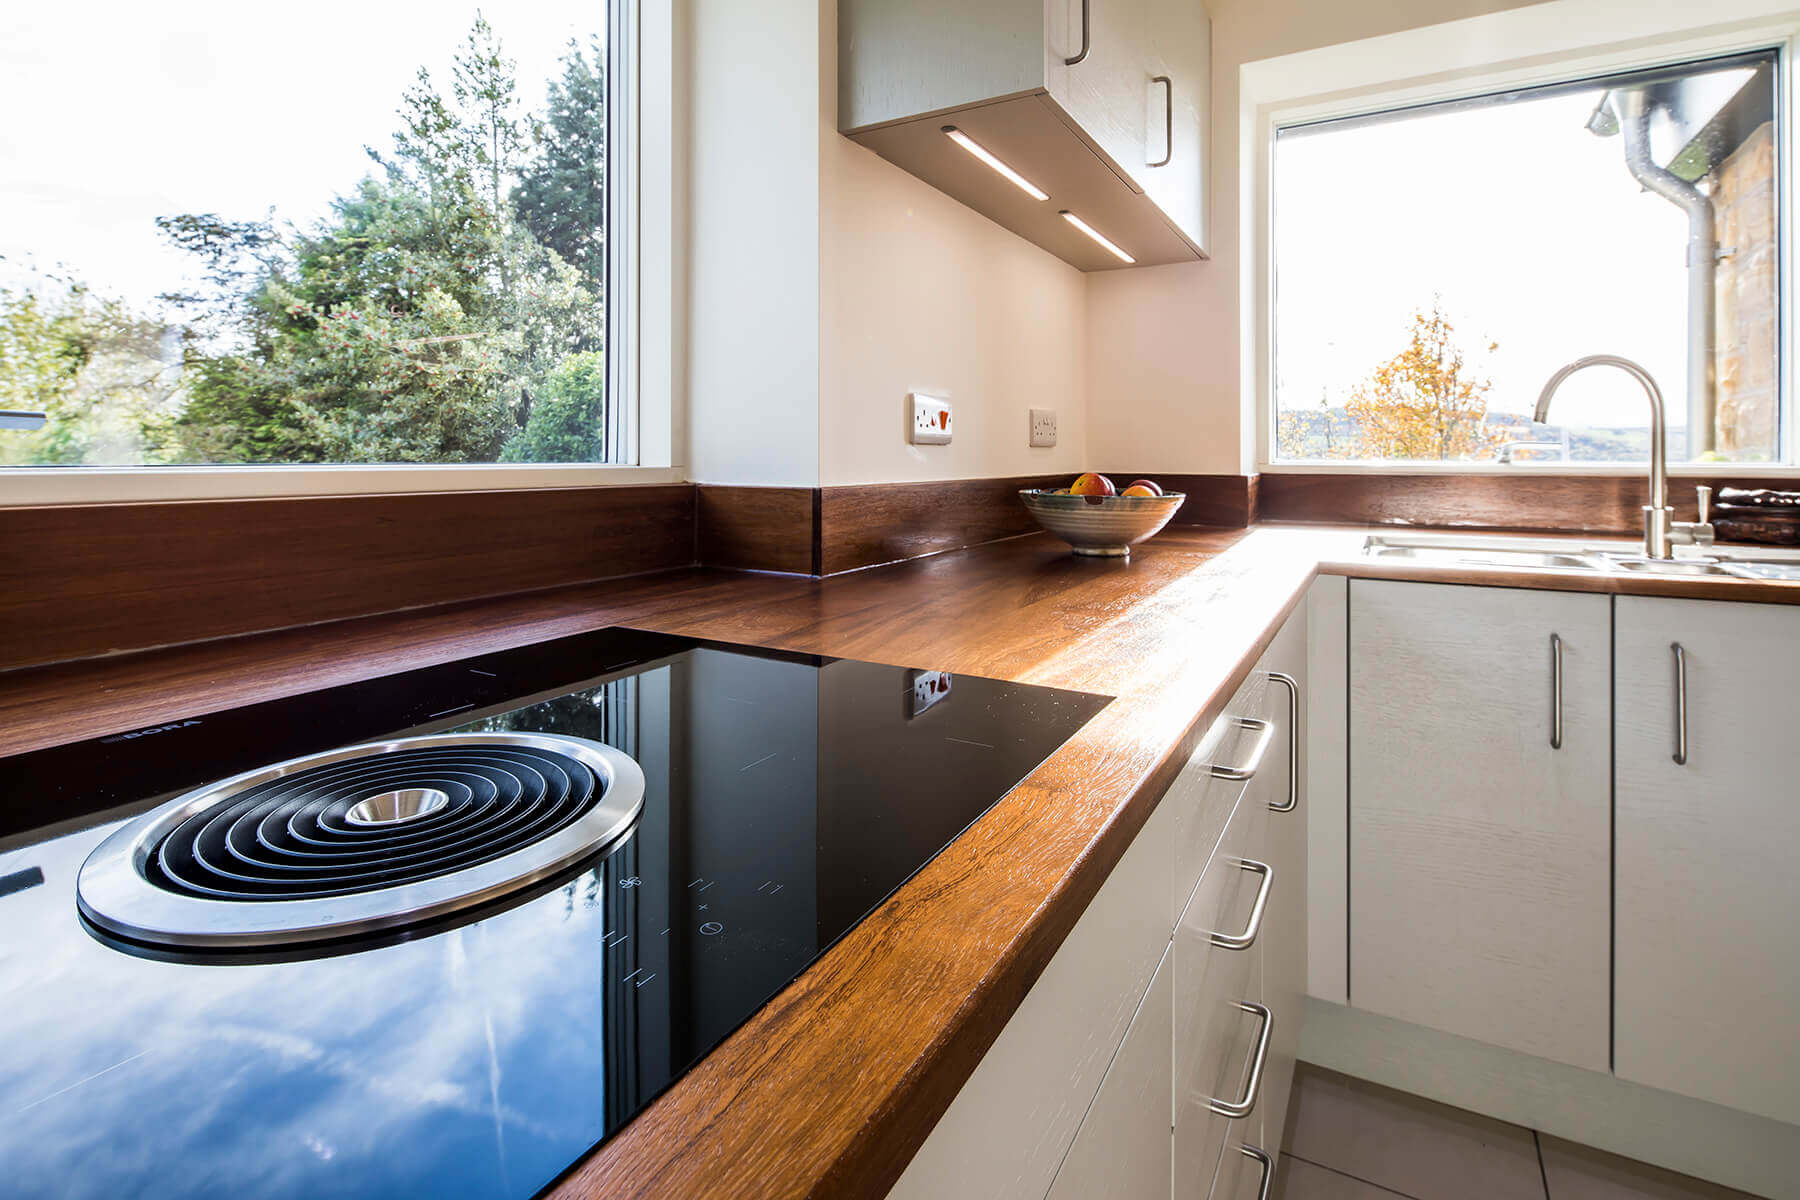 Sheffield Sustainable Kitchens - mid century modern kitchen with reclaimed timber worktop and Bora induction hob with integrated downdraught extractor